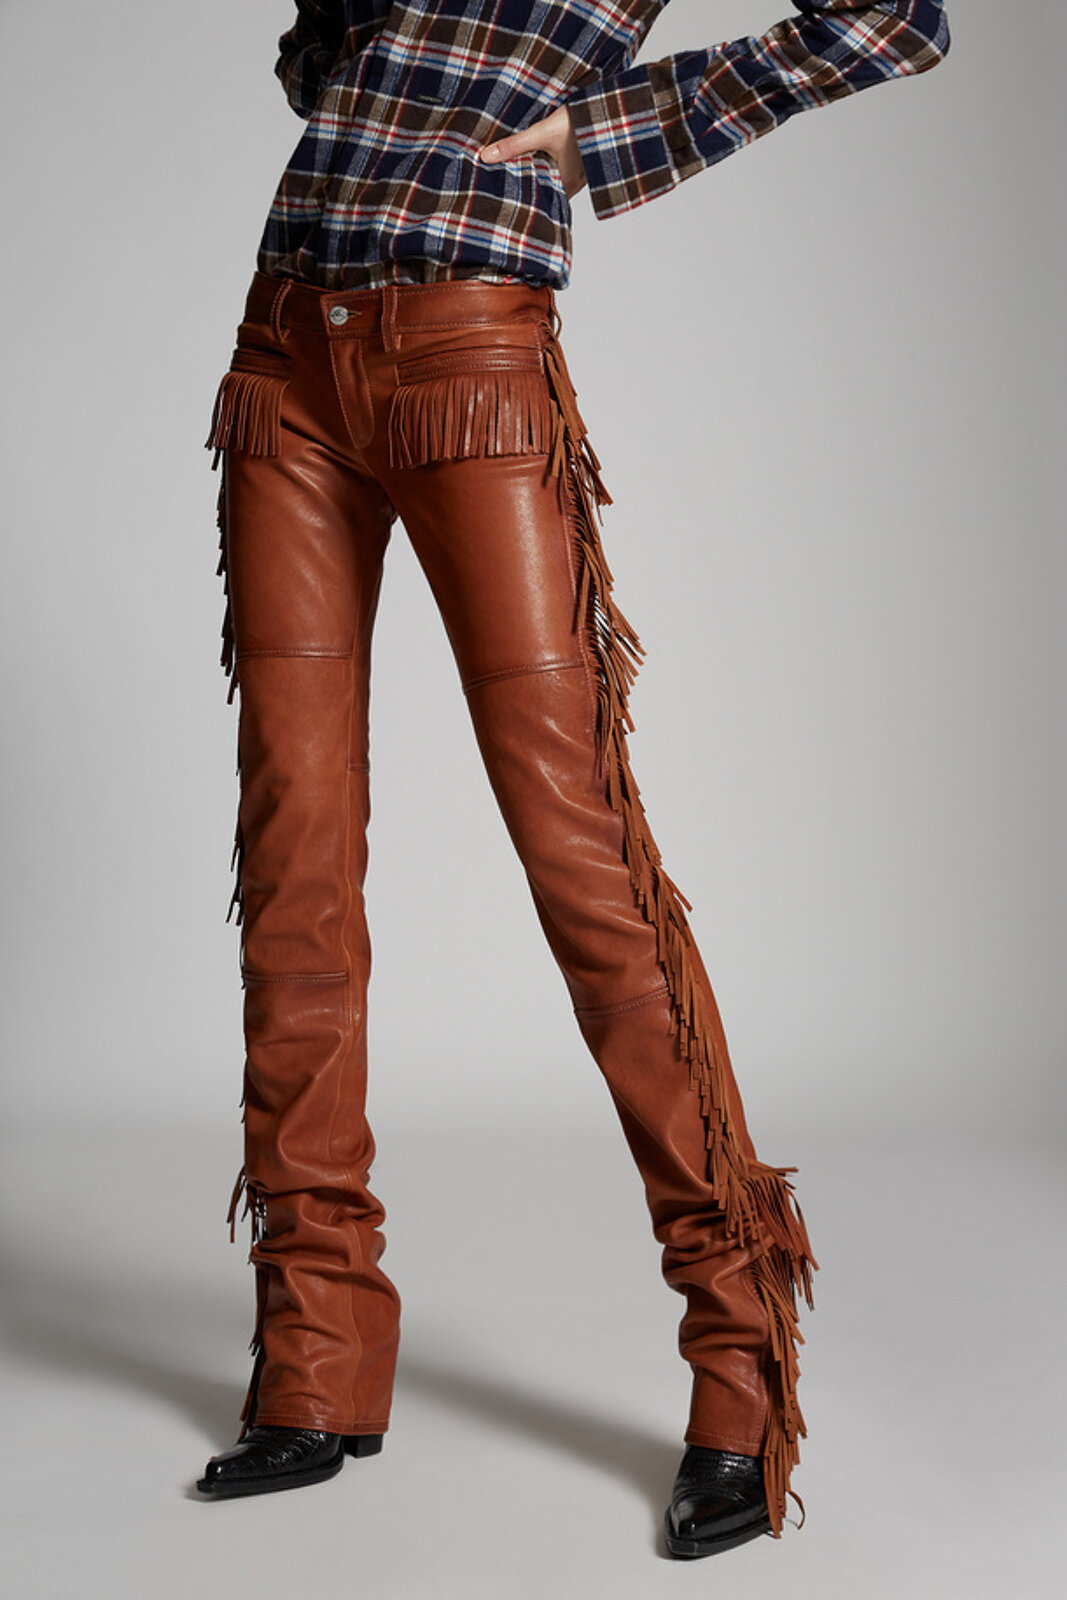 Leather Fringe Flared Rodeo Pants - Dsquared2